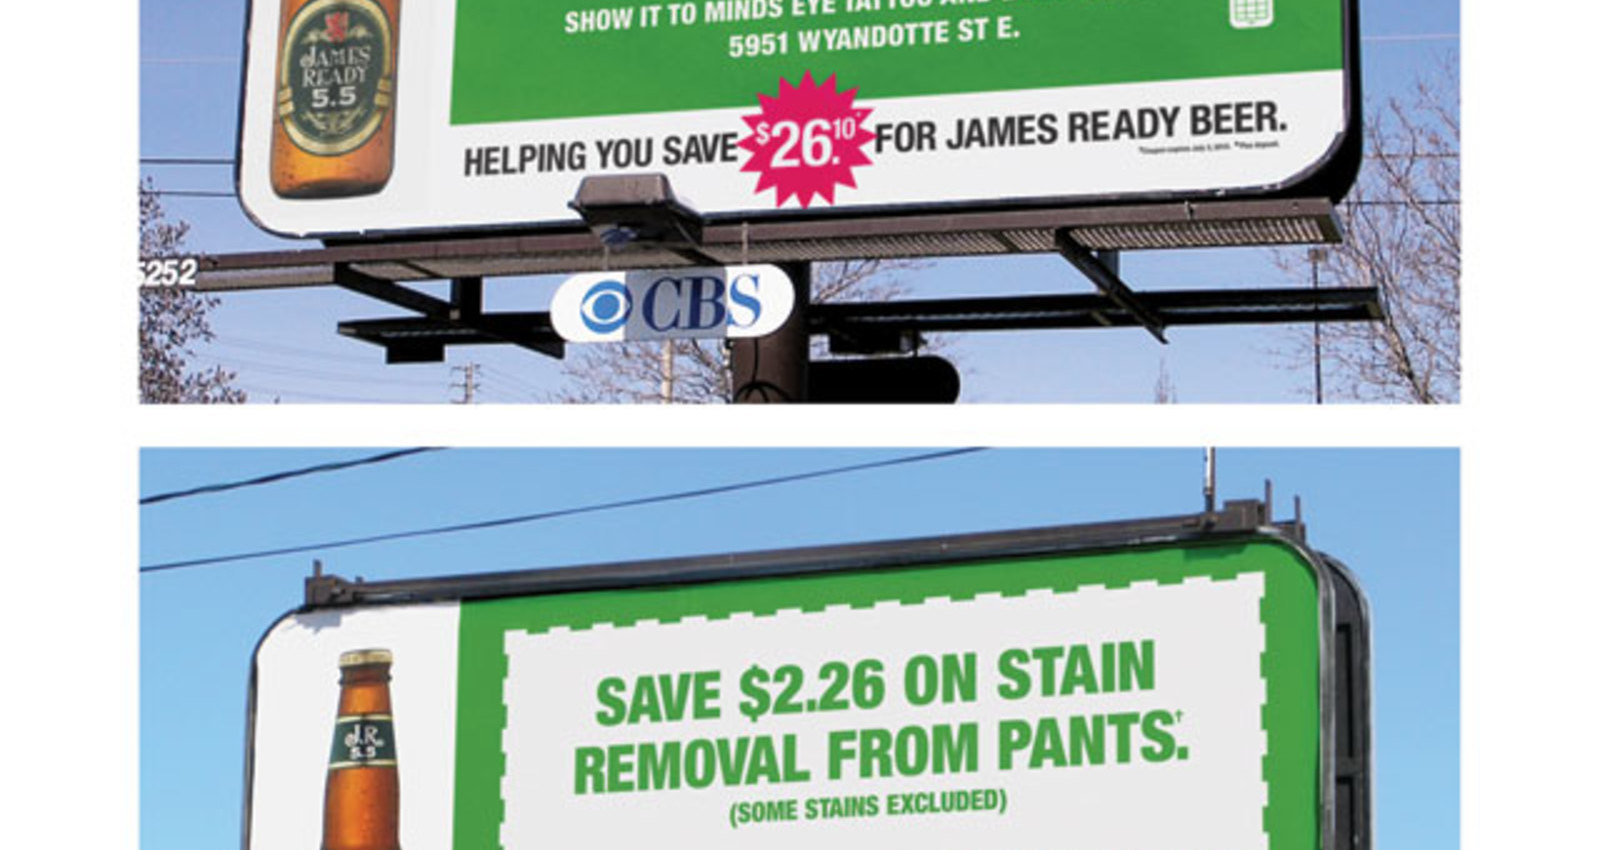 James Ready Coupon Billboard